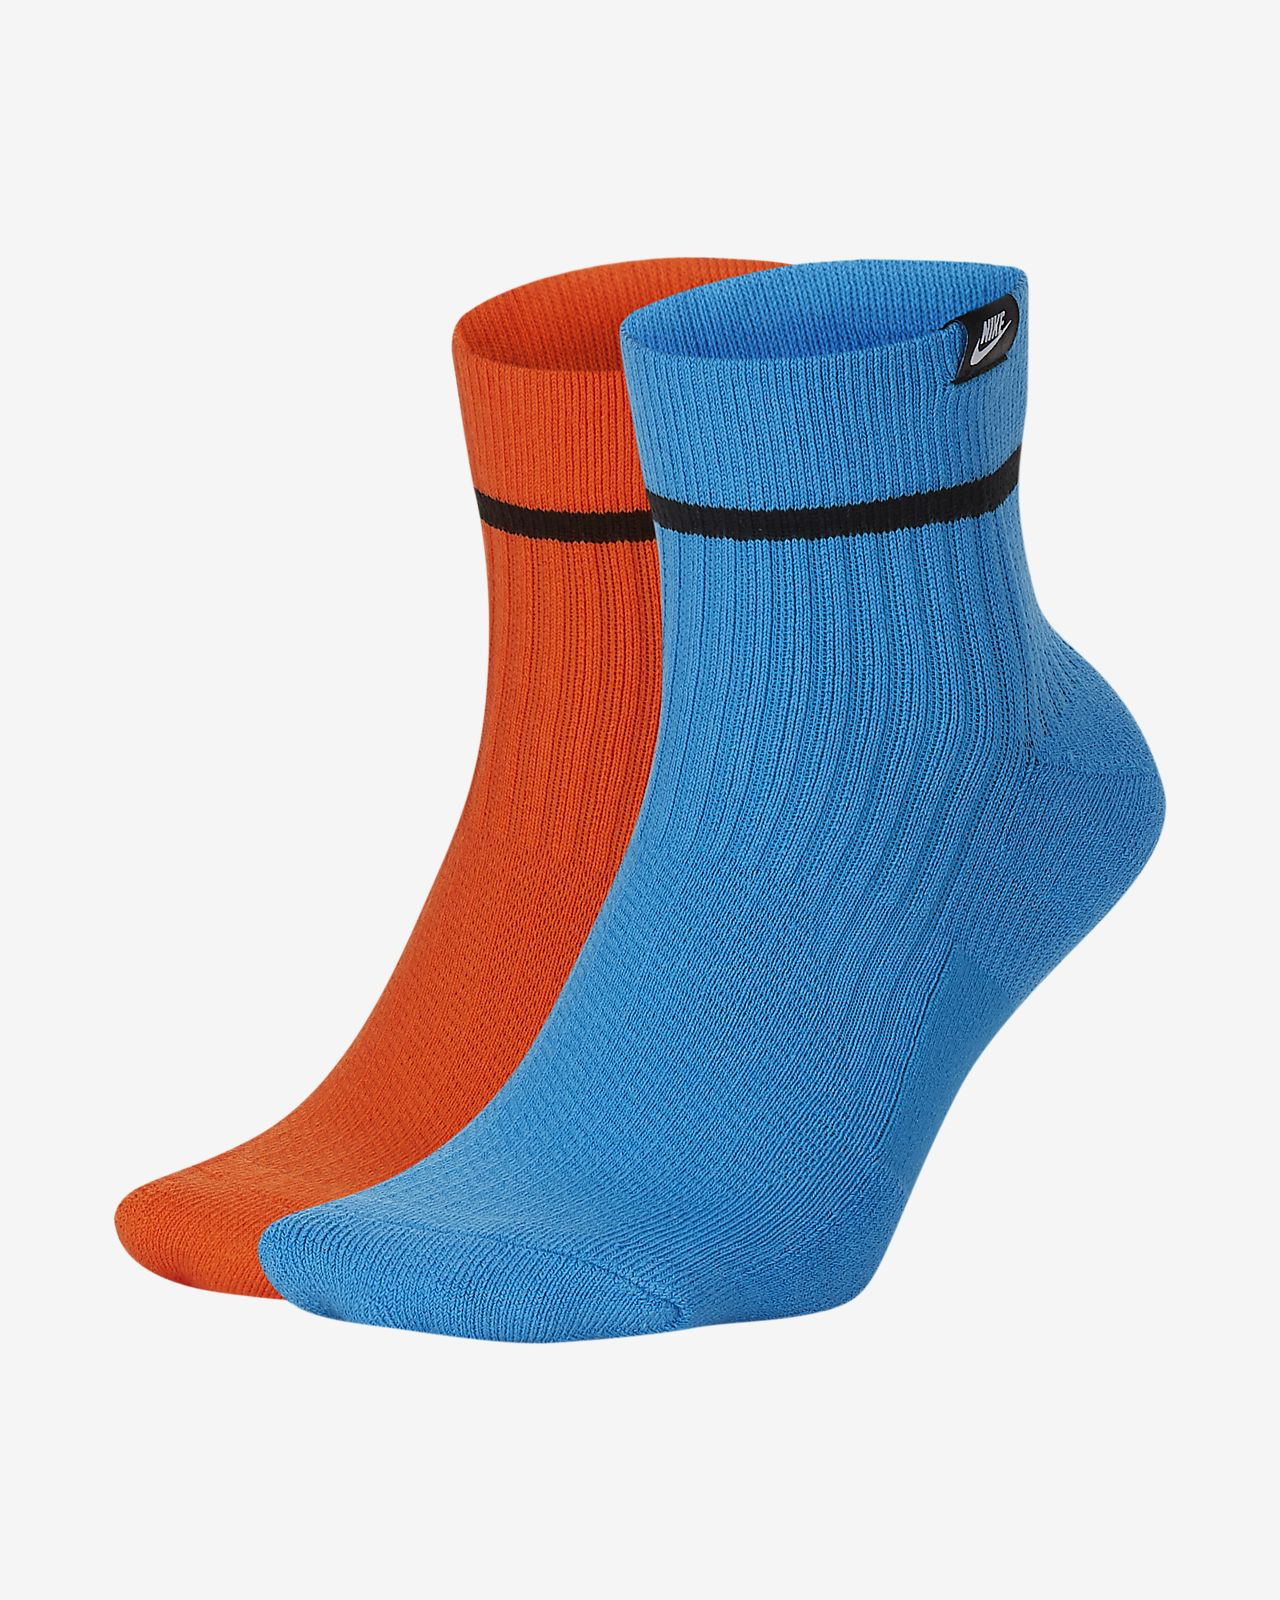 Nike SNKR Sox Ankle Socks (2 Pairs)